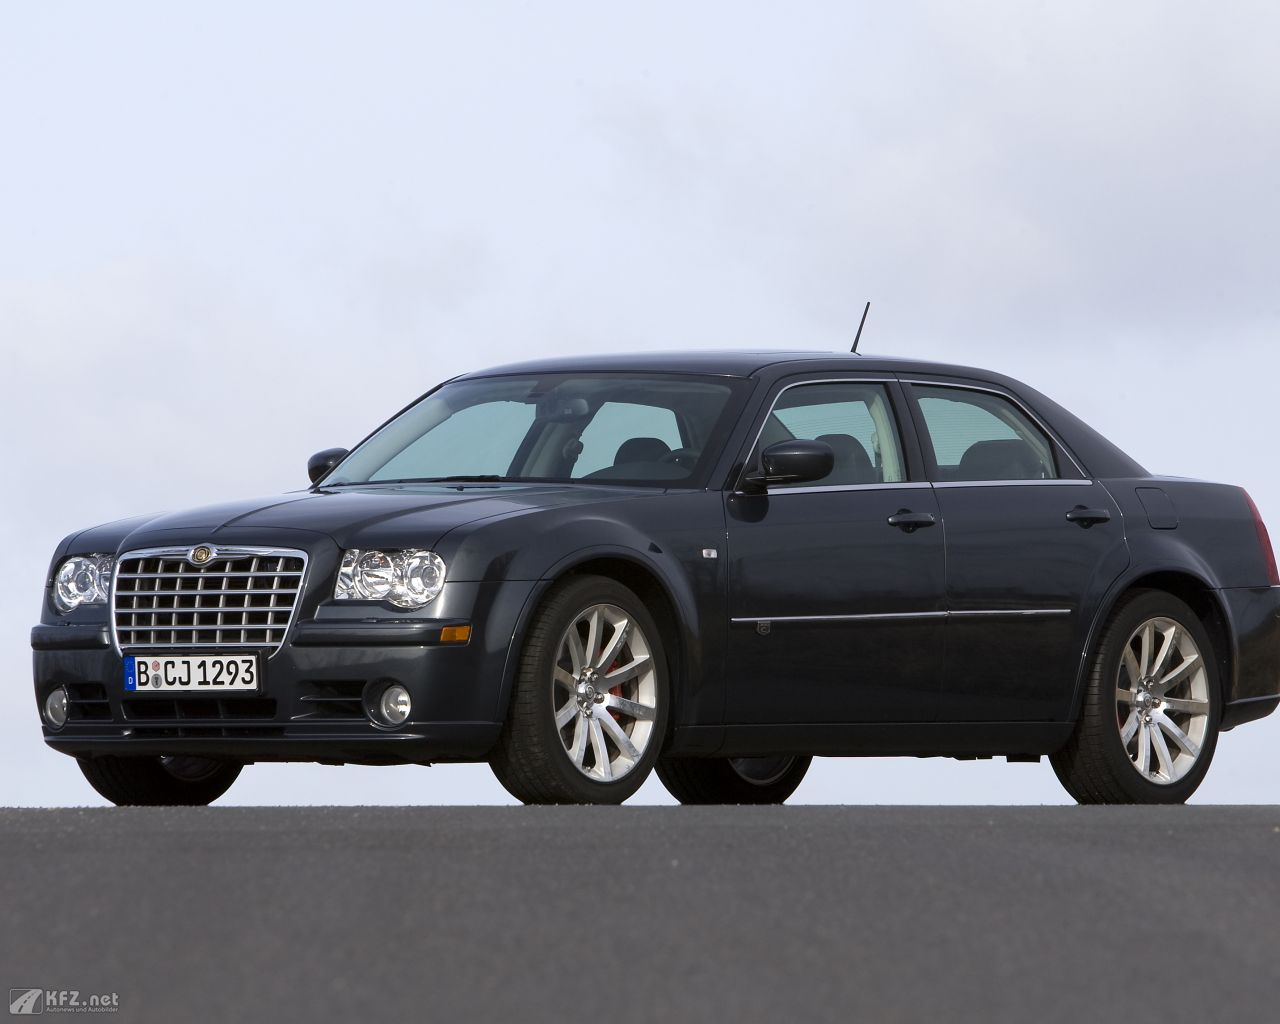 chrysler-300c-1280x1024-141